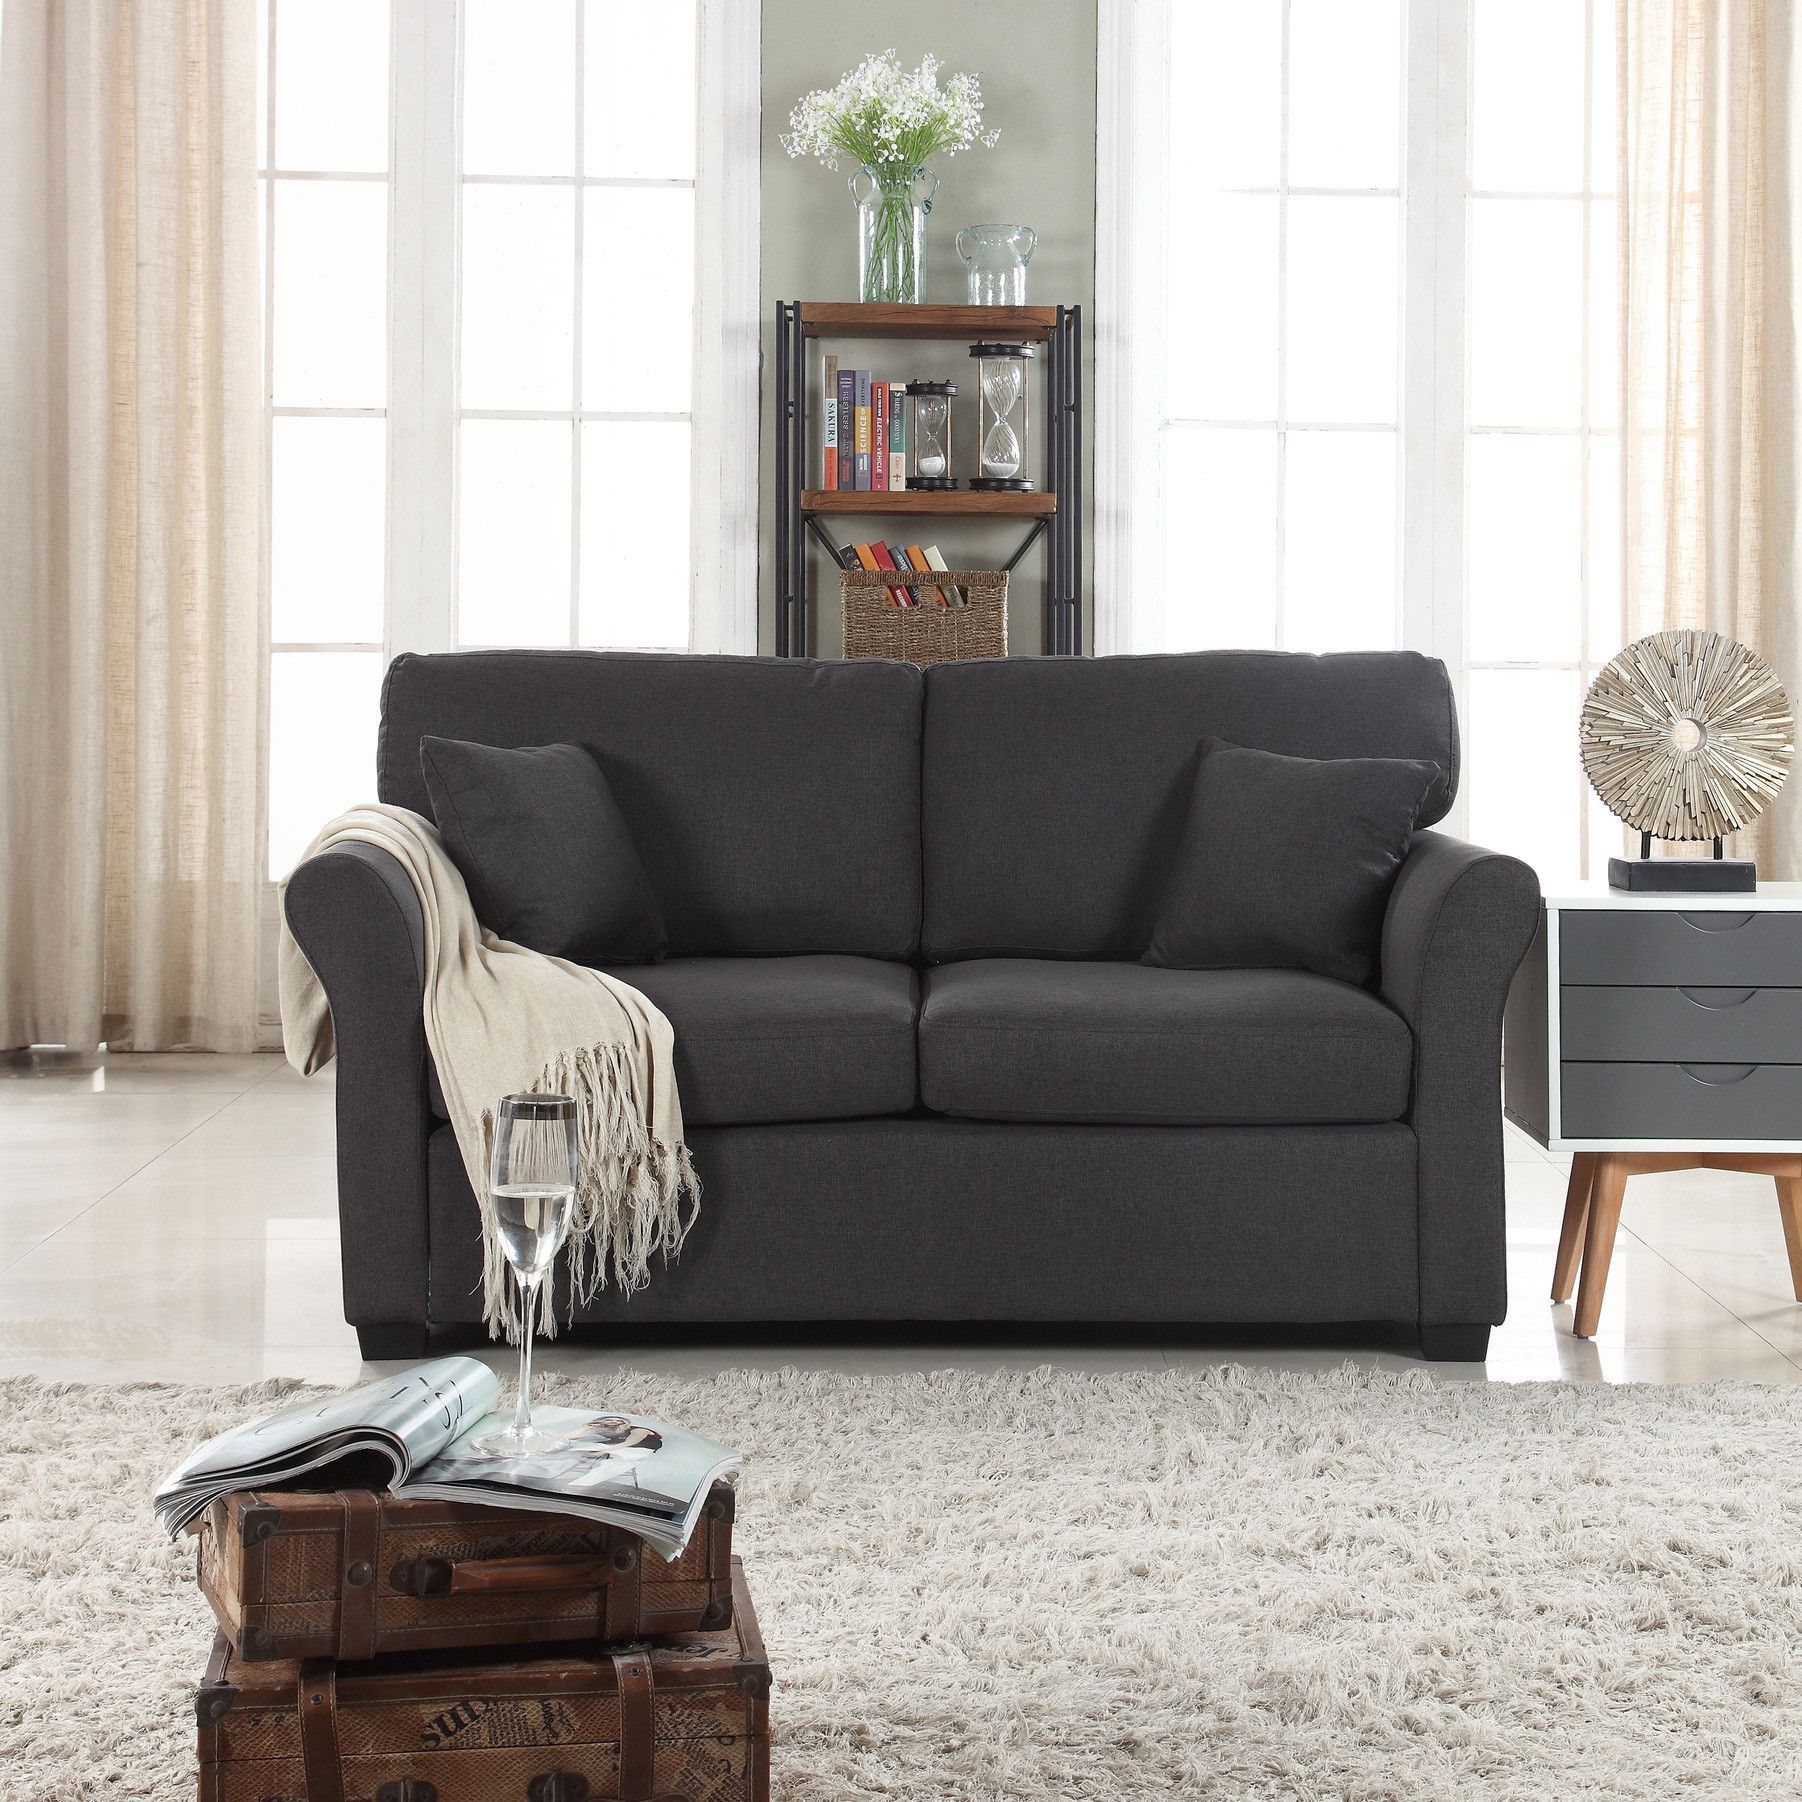 Gray Linen Furniture Set Sofa Loveseat Accent Chair: Fortunato Classic Low Wingback Linen Loveseat